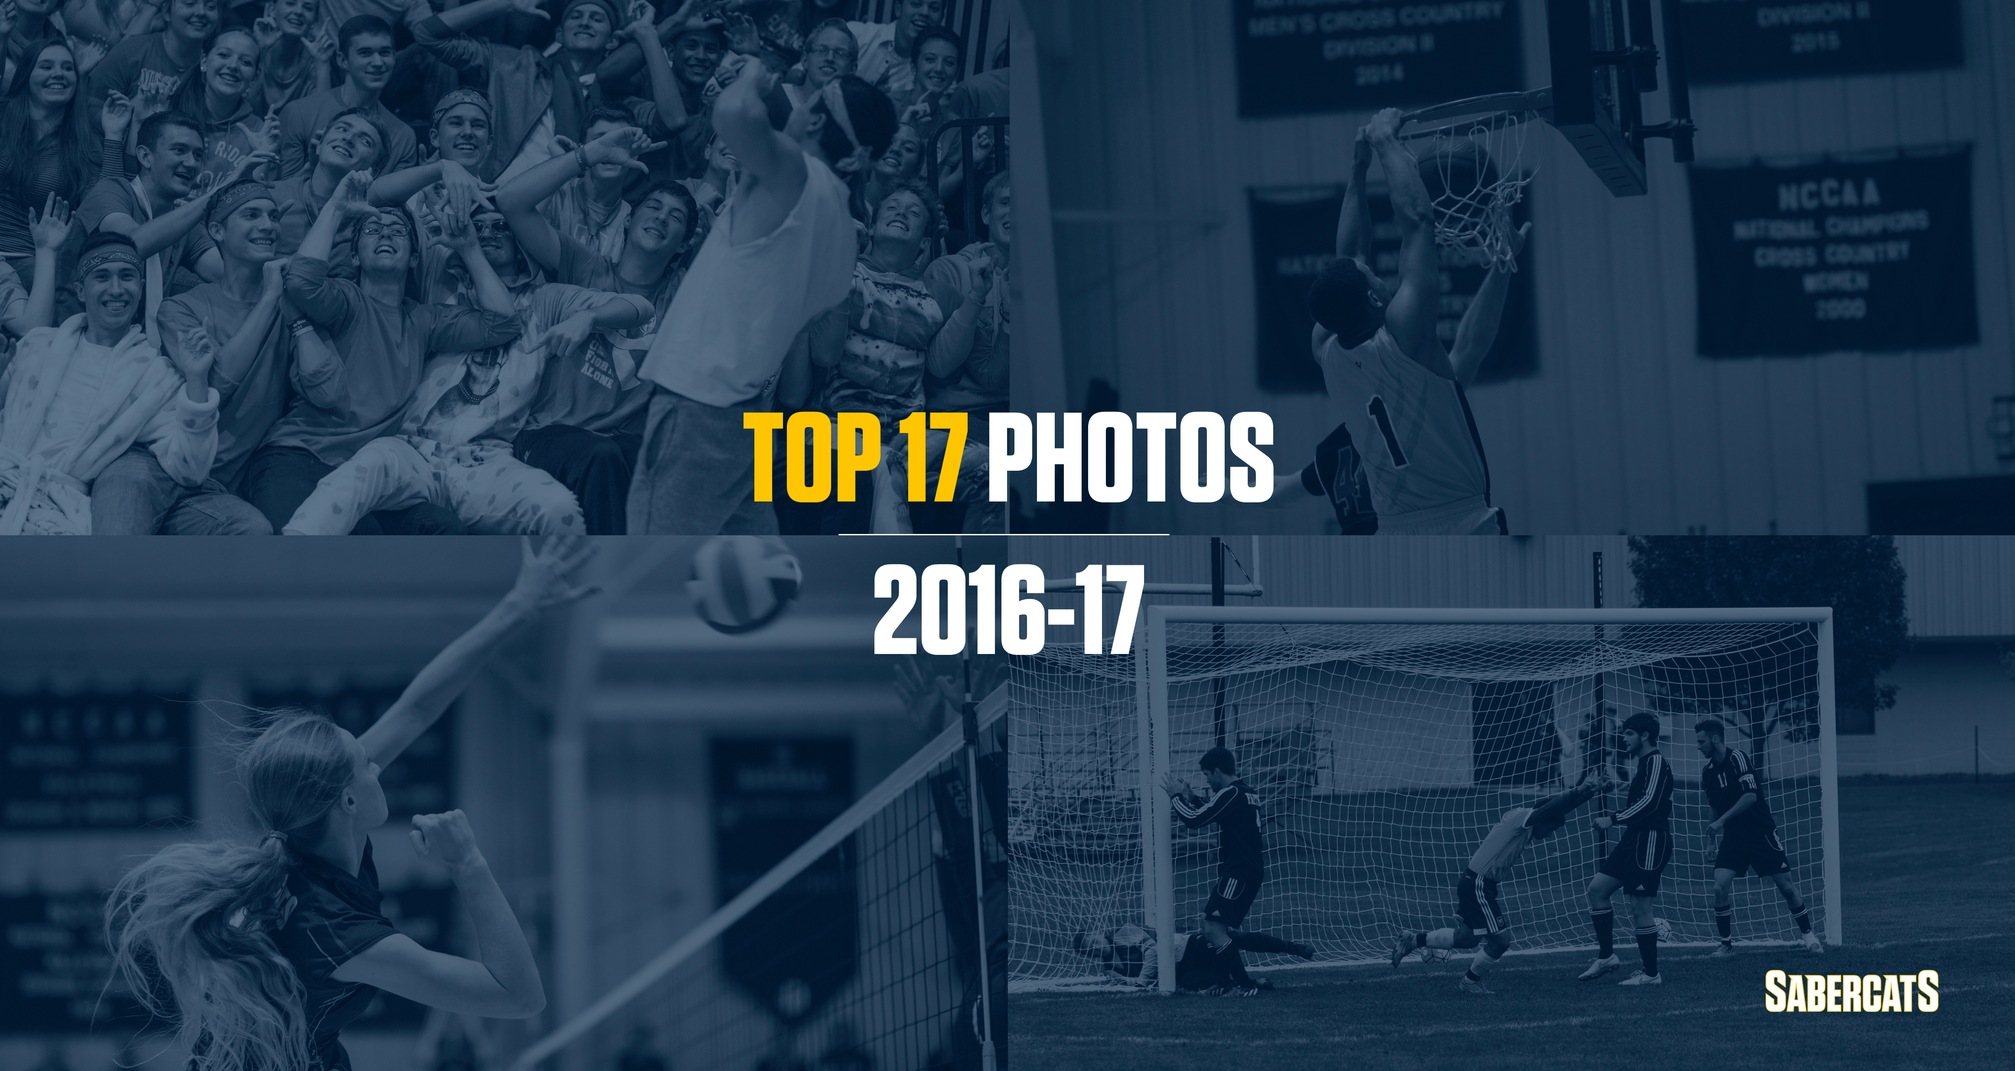 The Top 17 Photos from 2016-17